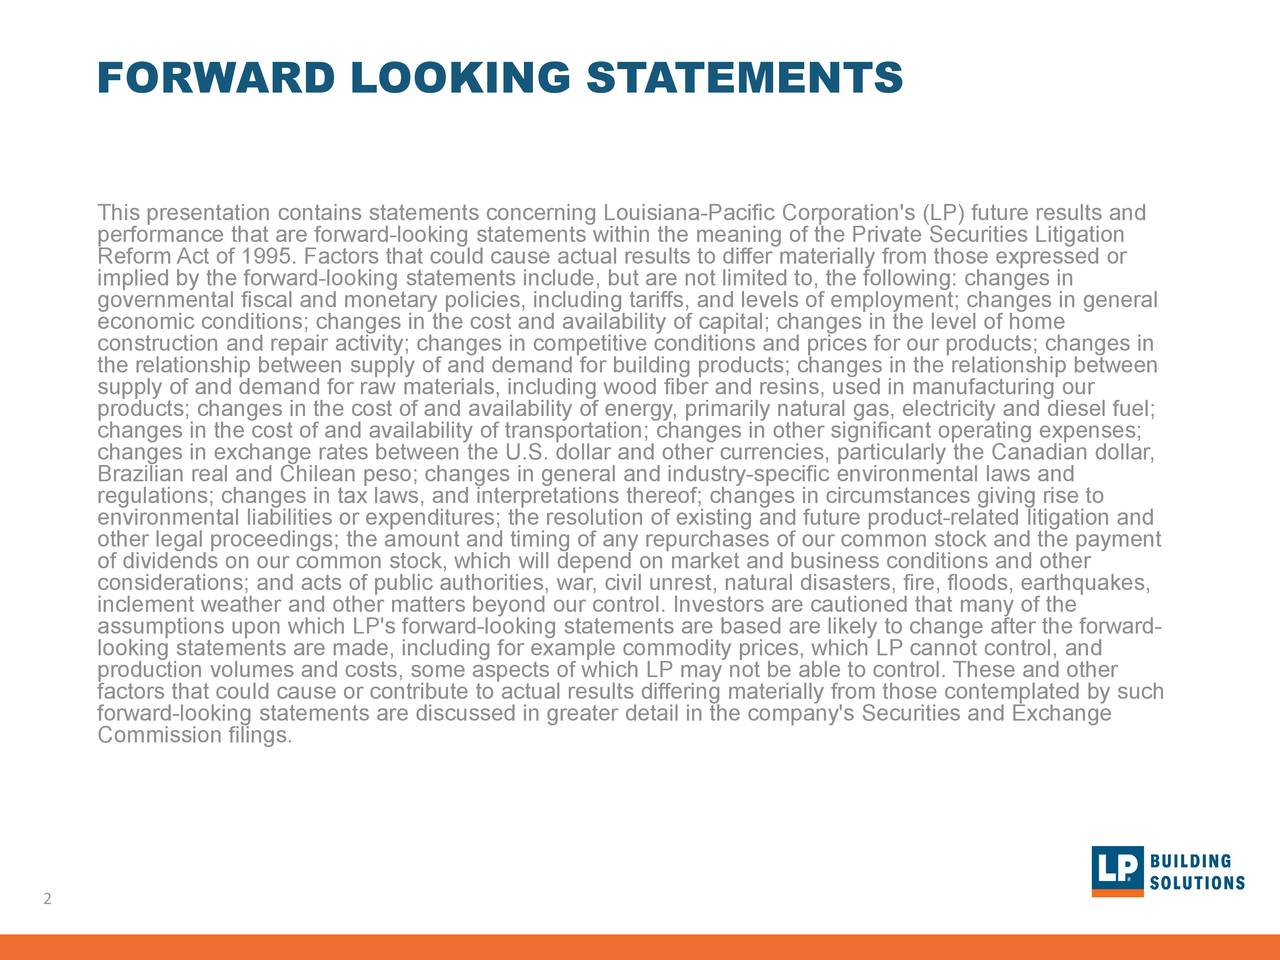 This presentation contains statements concerning Louisiana-Pacific Corporation's (LP) future results and performance that are forward-looking statements within the meaning of the Private Securities Litigation Reform Act of 1995. Factors that could cause actual results to differ materially from those expressed or implied by the forward-looking statements include, but are not limited to, the following: changes in governmental fiscal and monetary policies, including tariffs, and levels of employment; changes in general economic conditions; changes in the cost and availability of capital; changes in the level of home construction and repair activity; changes in competitive conditions and prices for our products; changes in the relationship between supply of and demand for building products; changes in the relationship between supply of and demand for raw materials, including wood fiber and resins, used in manufacturing our products; changes in the cost of and availability of energy, primarily natural gas, electricity and diesel fuel; changes in the cost of and availability of transportation; changes in other significant operating expenses; changes in exchange rates between the U.S. dollar and other currencies, particularly the Canadian dollar, Brazilian real and Chilean peso; changes in general and industry-specific environmental laws and regulations; changes in tax laws, and interpretations thereof; changes in circumstances giving rise to other legal proceedings; the amount and timing of any repurchases of our common stock and the paymentgation and of dividends on our common stock, which will depend on market and business conditions and other considerations; and acts of public authorities, war, civil unrest, natural disasters, fire, floods, earthquakes, inclement weather and other matters beyond our control. Investors are cautioned that many of the assumptions upon which LP's forward-looking statements are based are likely to change after the forward- looking statement